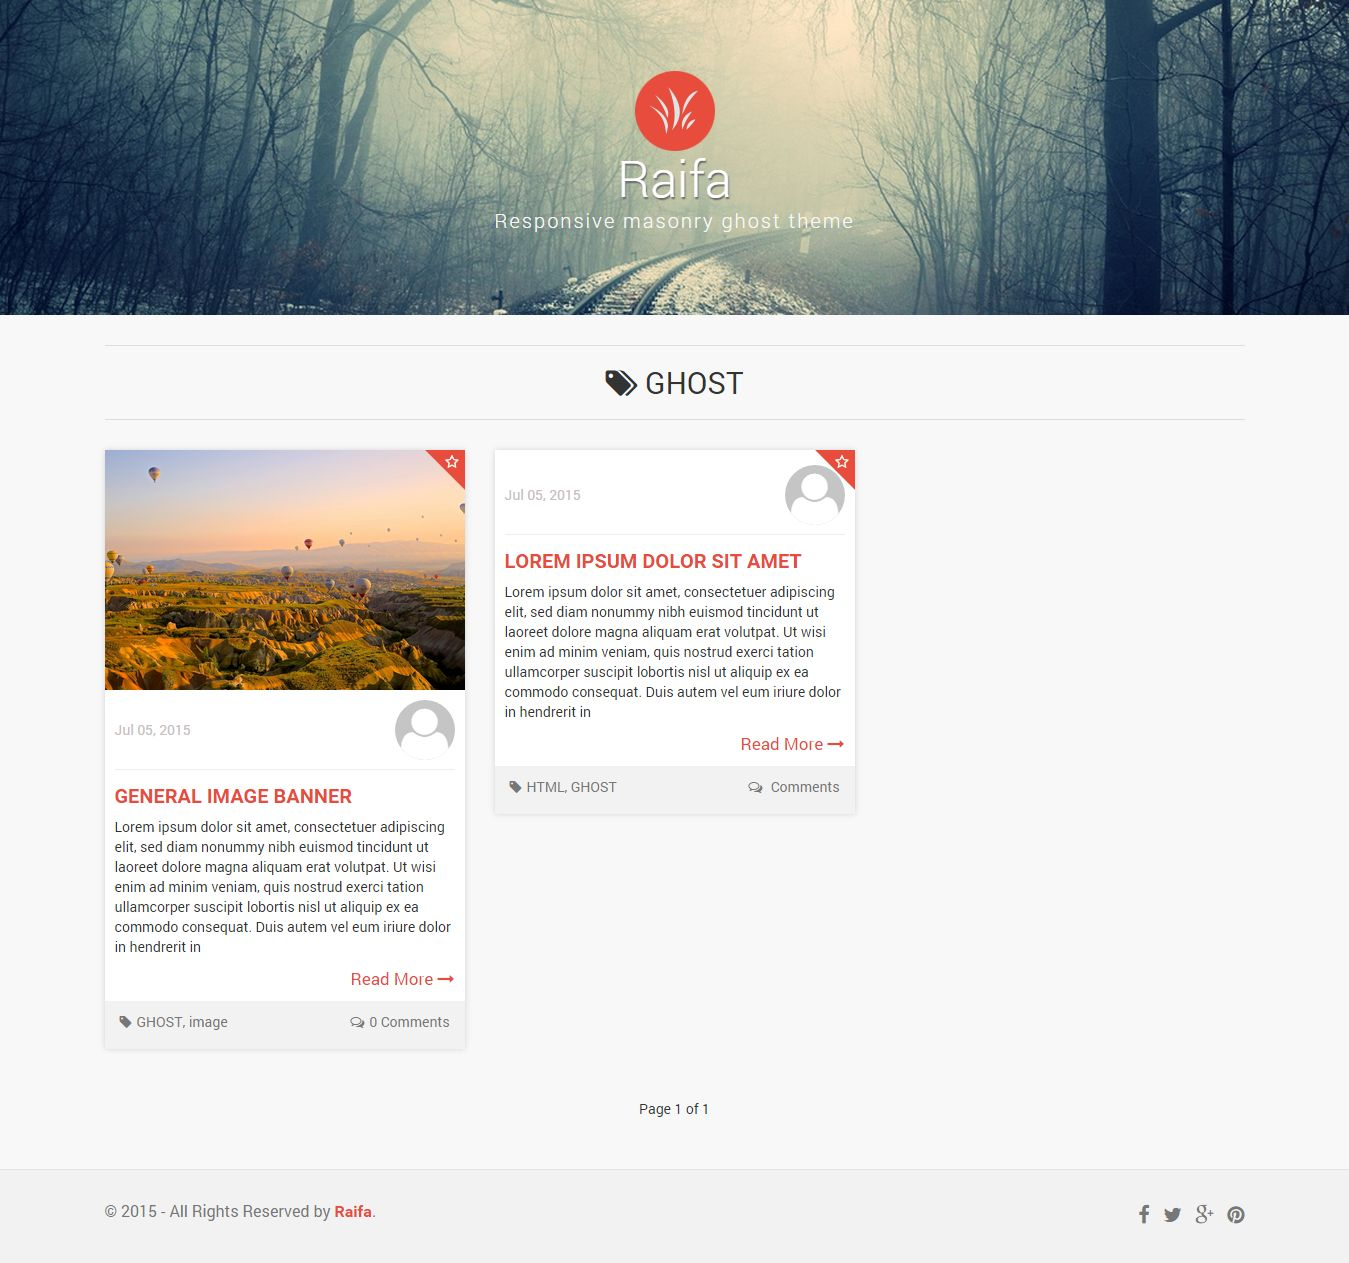 Raifa - Responsive Masonary Ghost Theme Screenshot 5